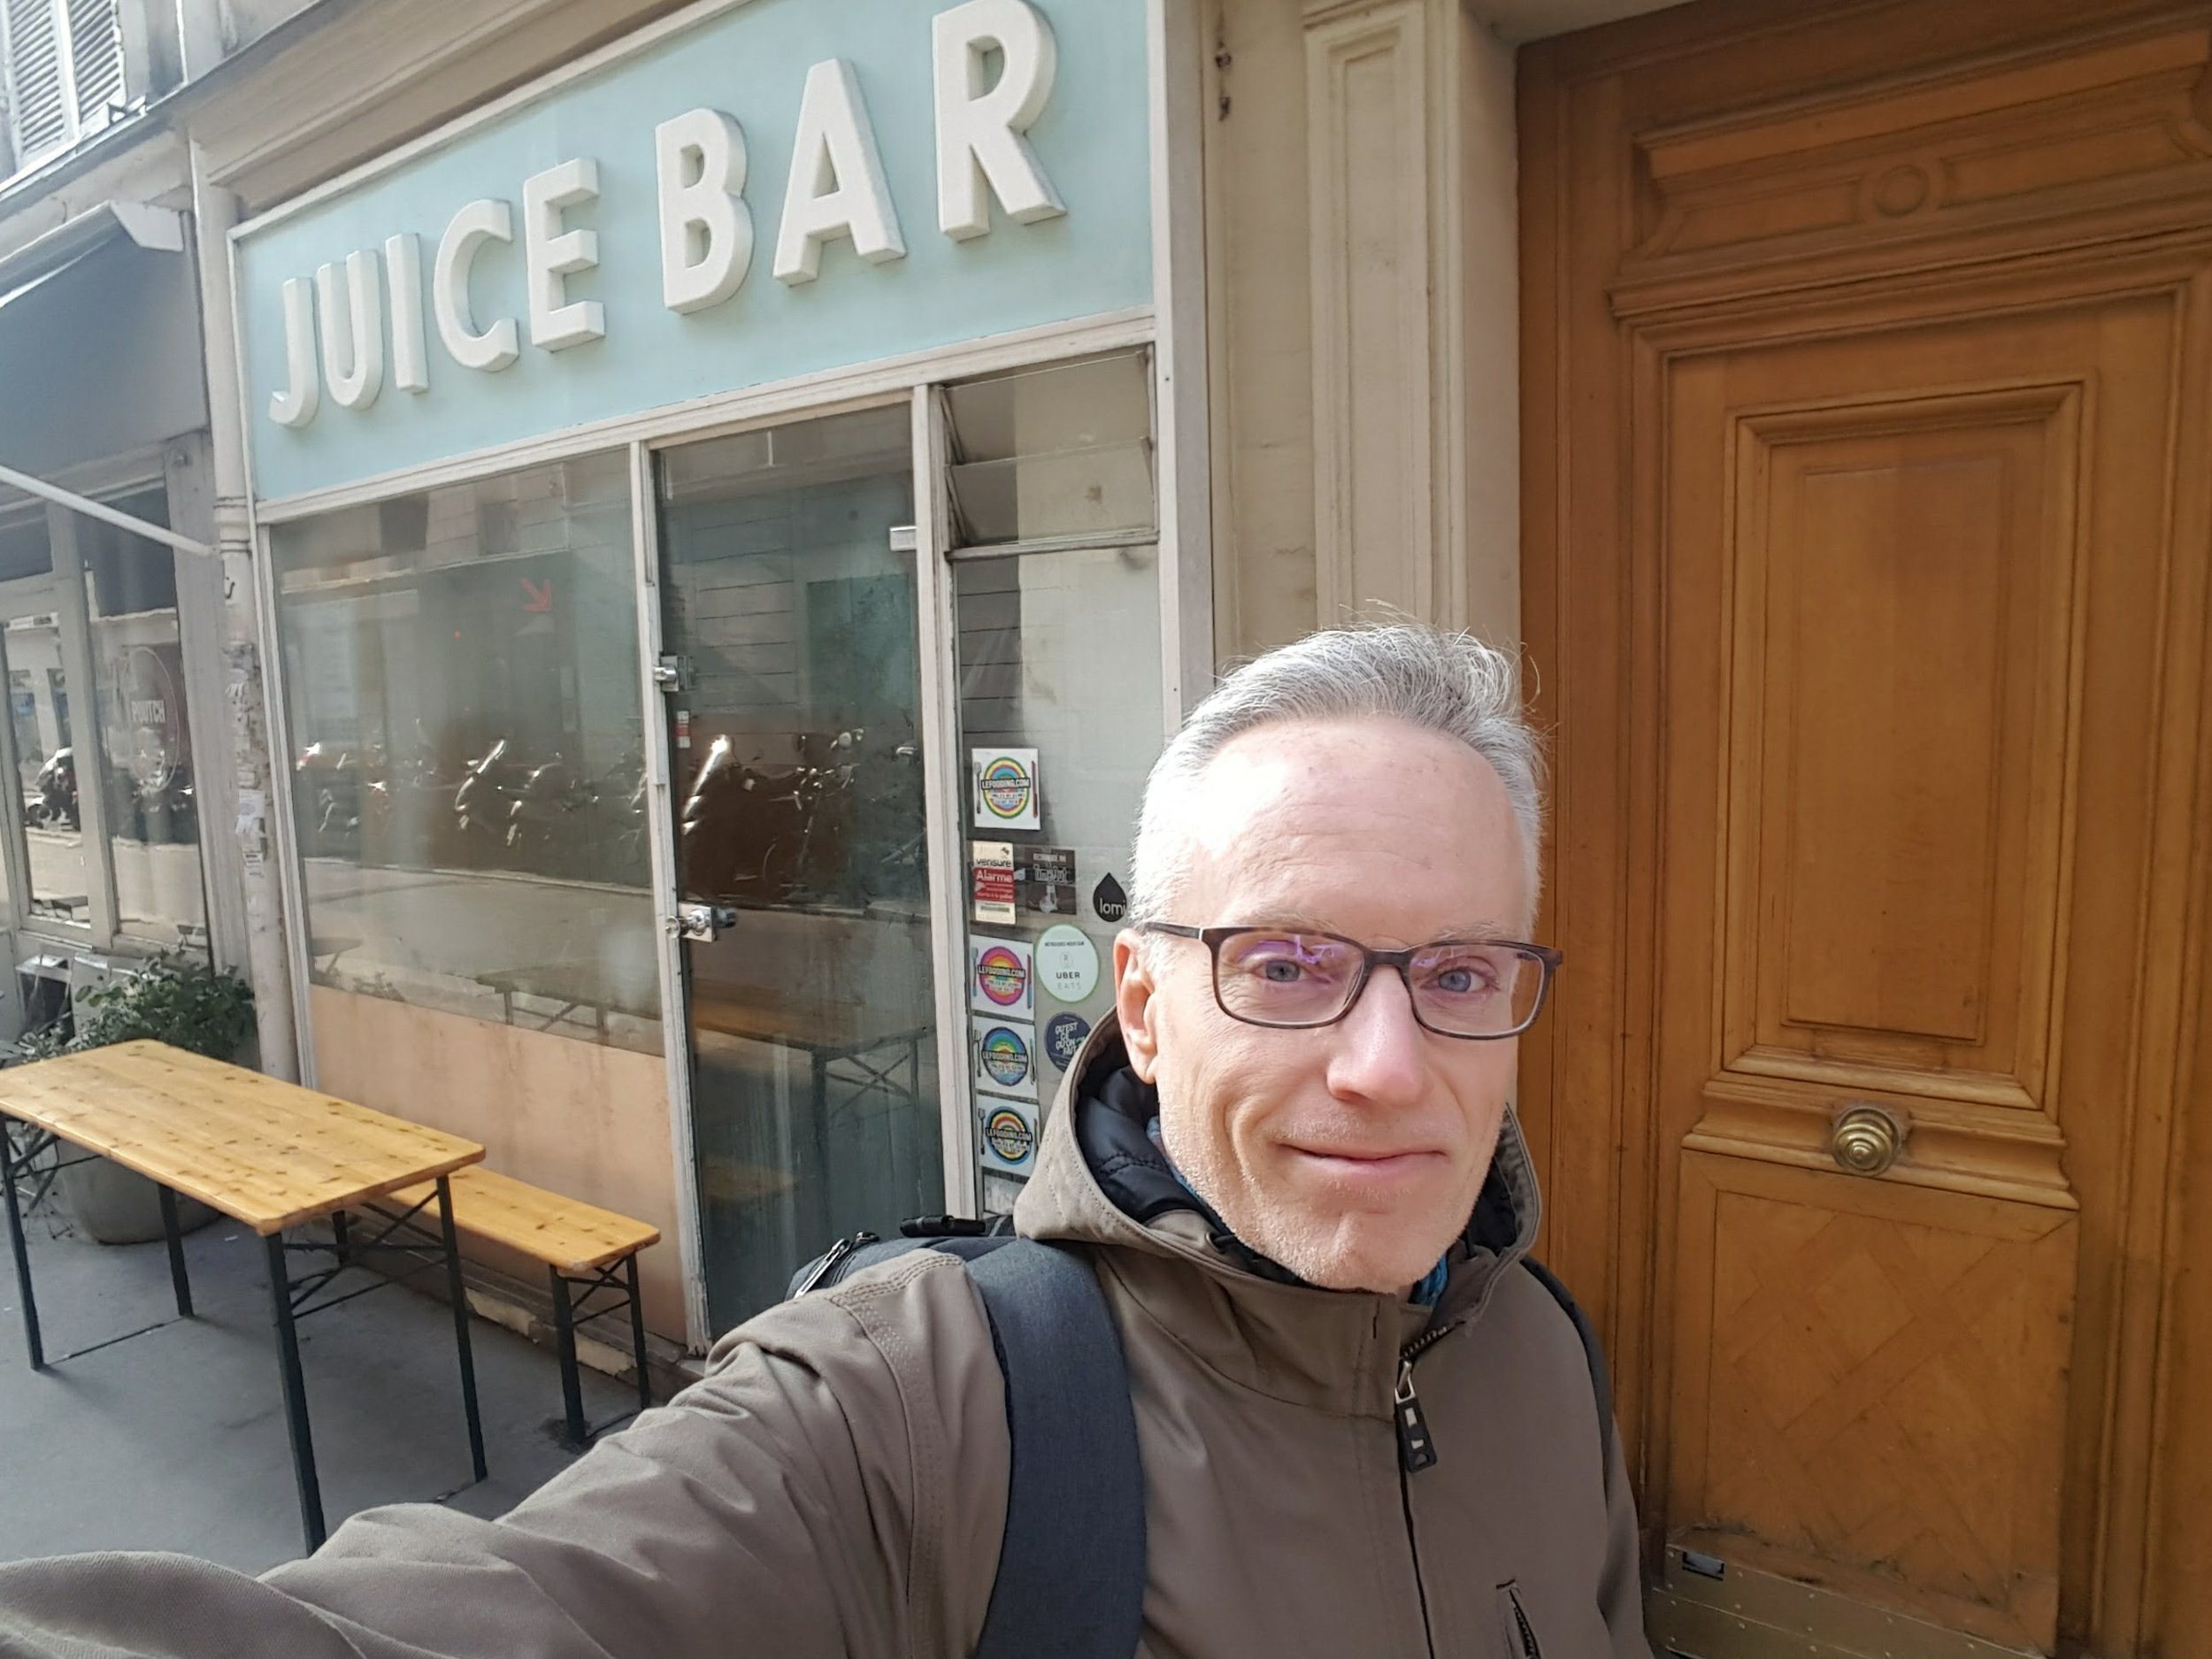 Note - It doesn't say 'Bob's'. Actually the American owner's name is Mark, but he wanted a more American sounding name - SHHHH